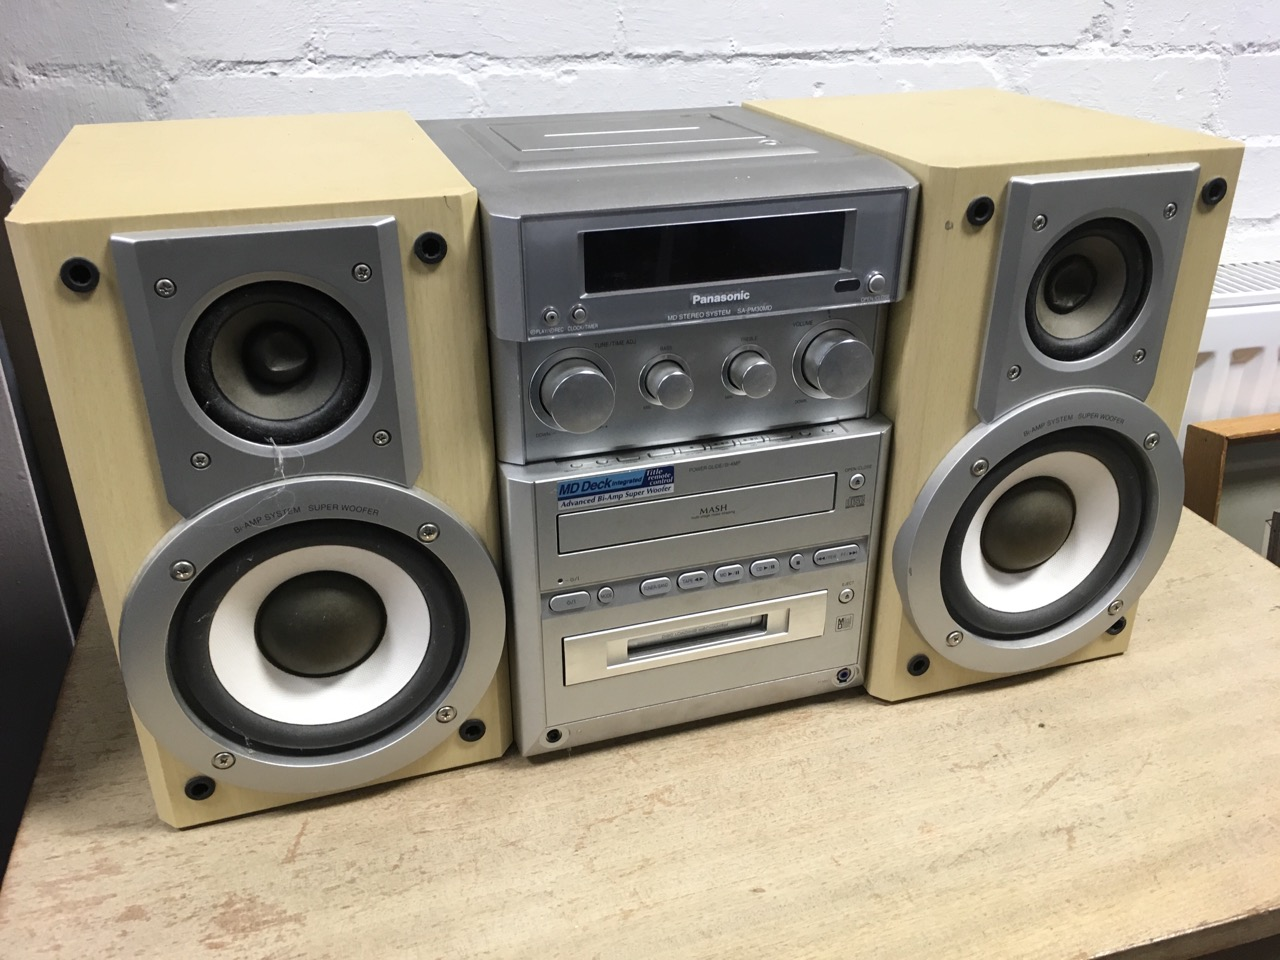 A Panasonic MD stereo system, SA-PM30MD, with twin Bi-Amp super ...